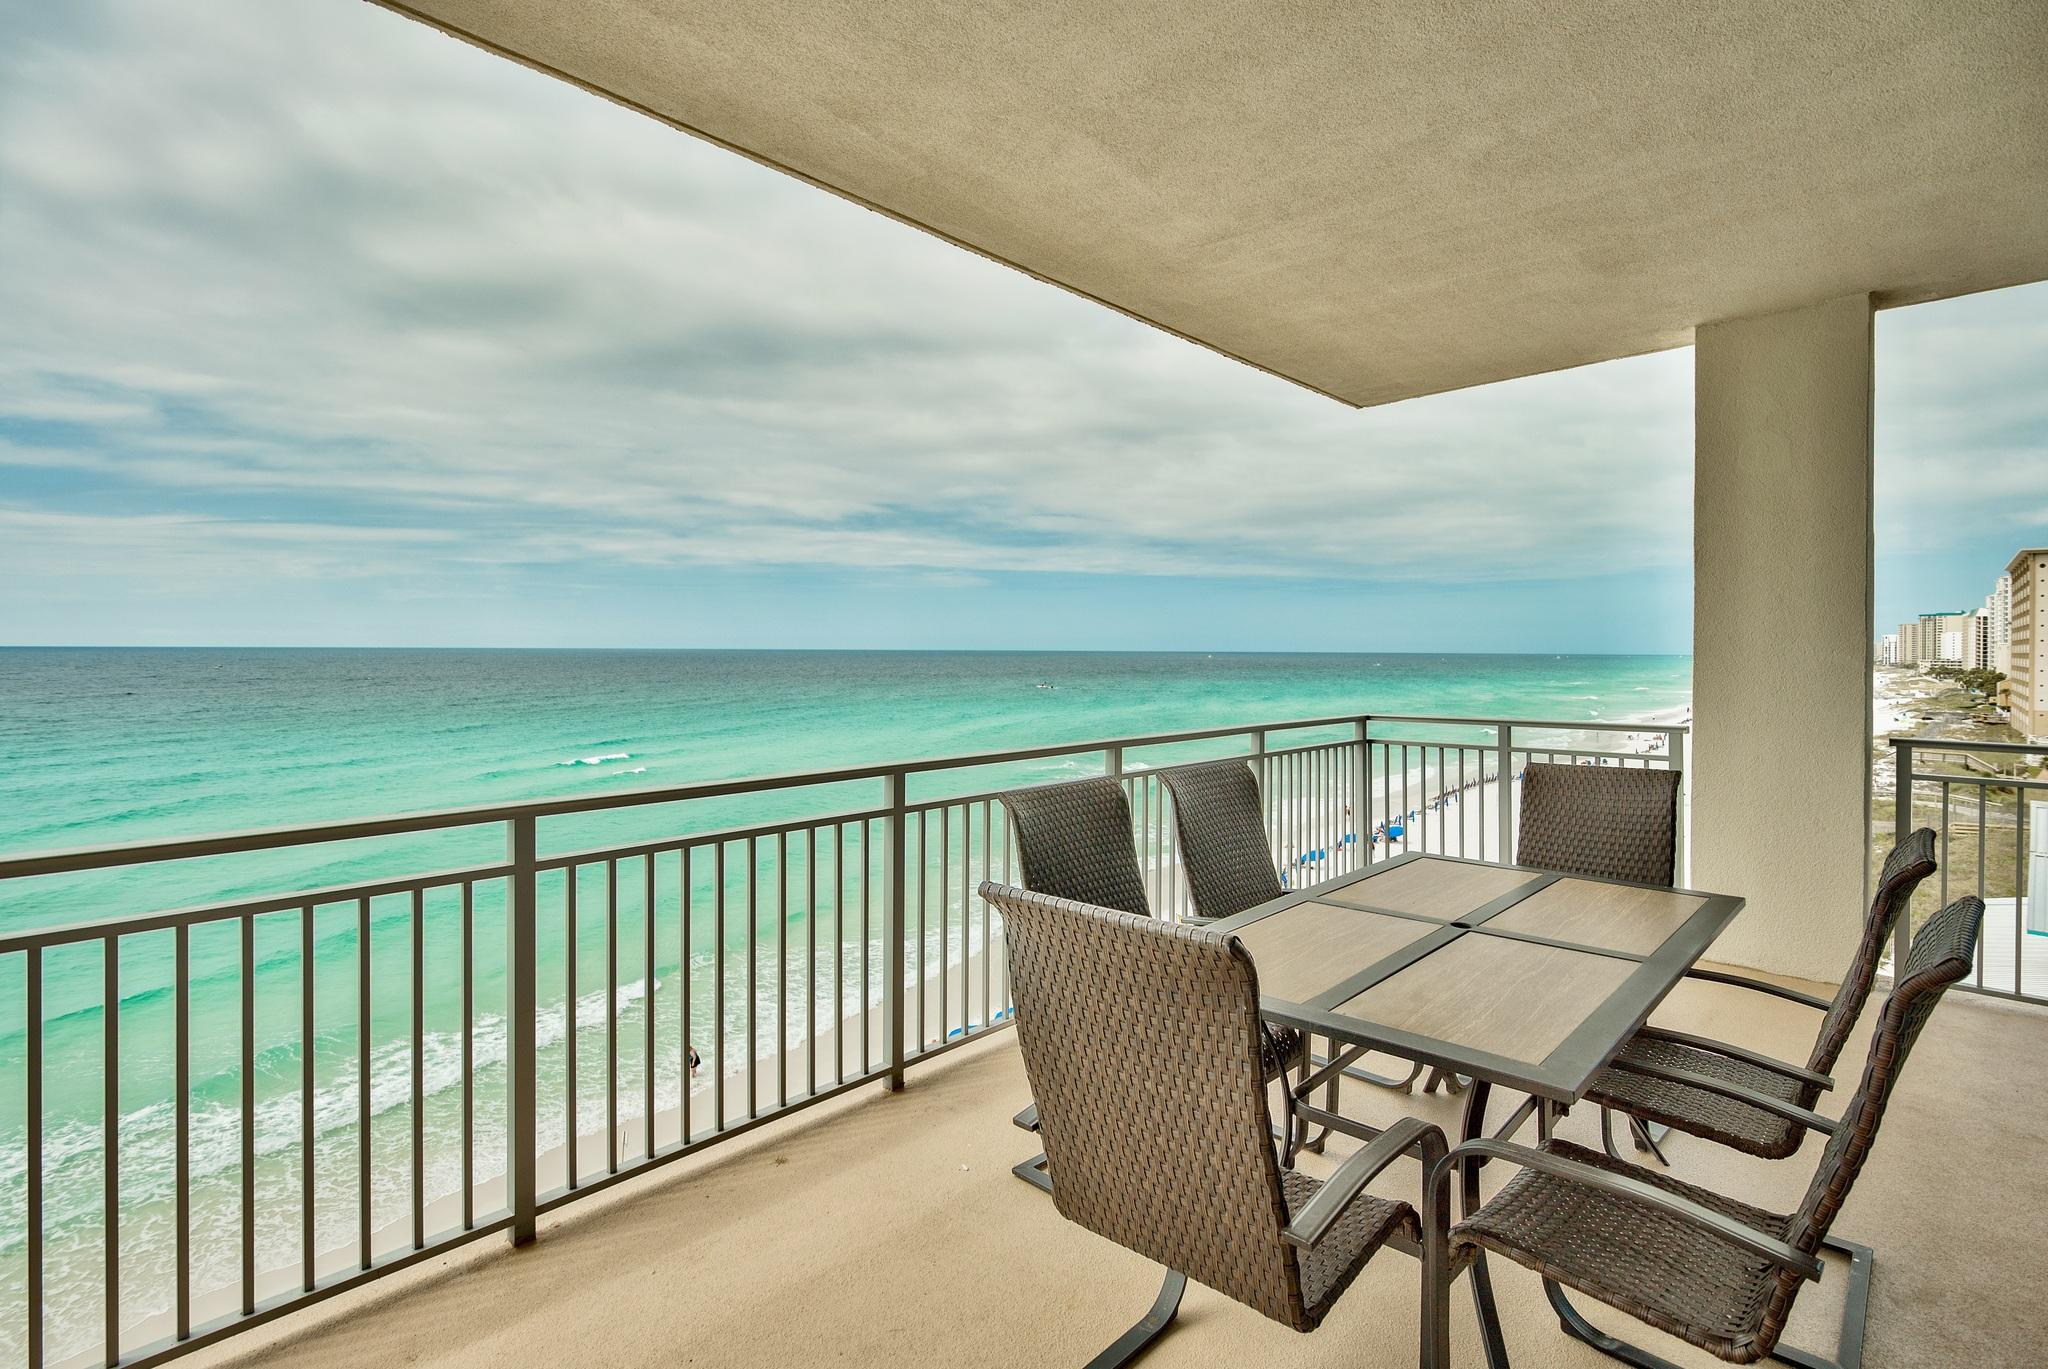 1816 SCENIC HIGHWAY 98 #UNIT 602, DESTIN, FL 32541